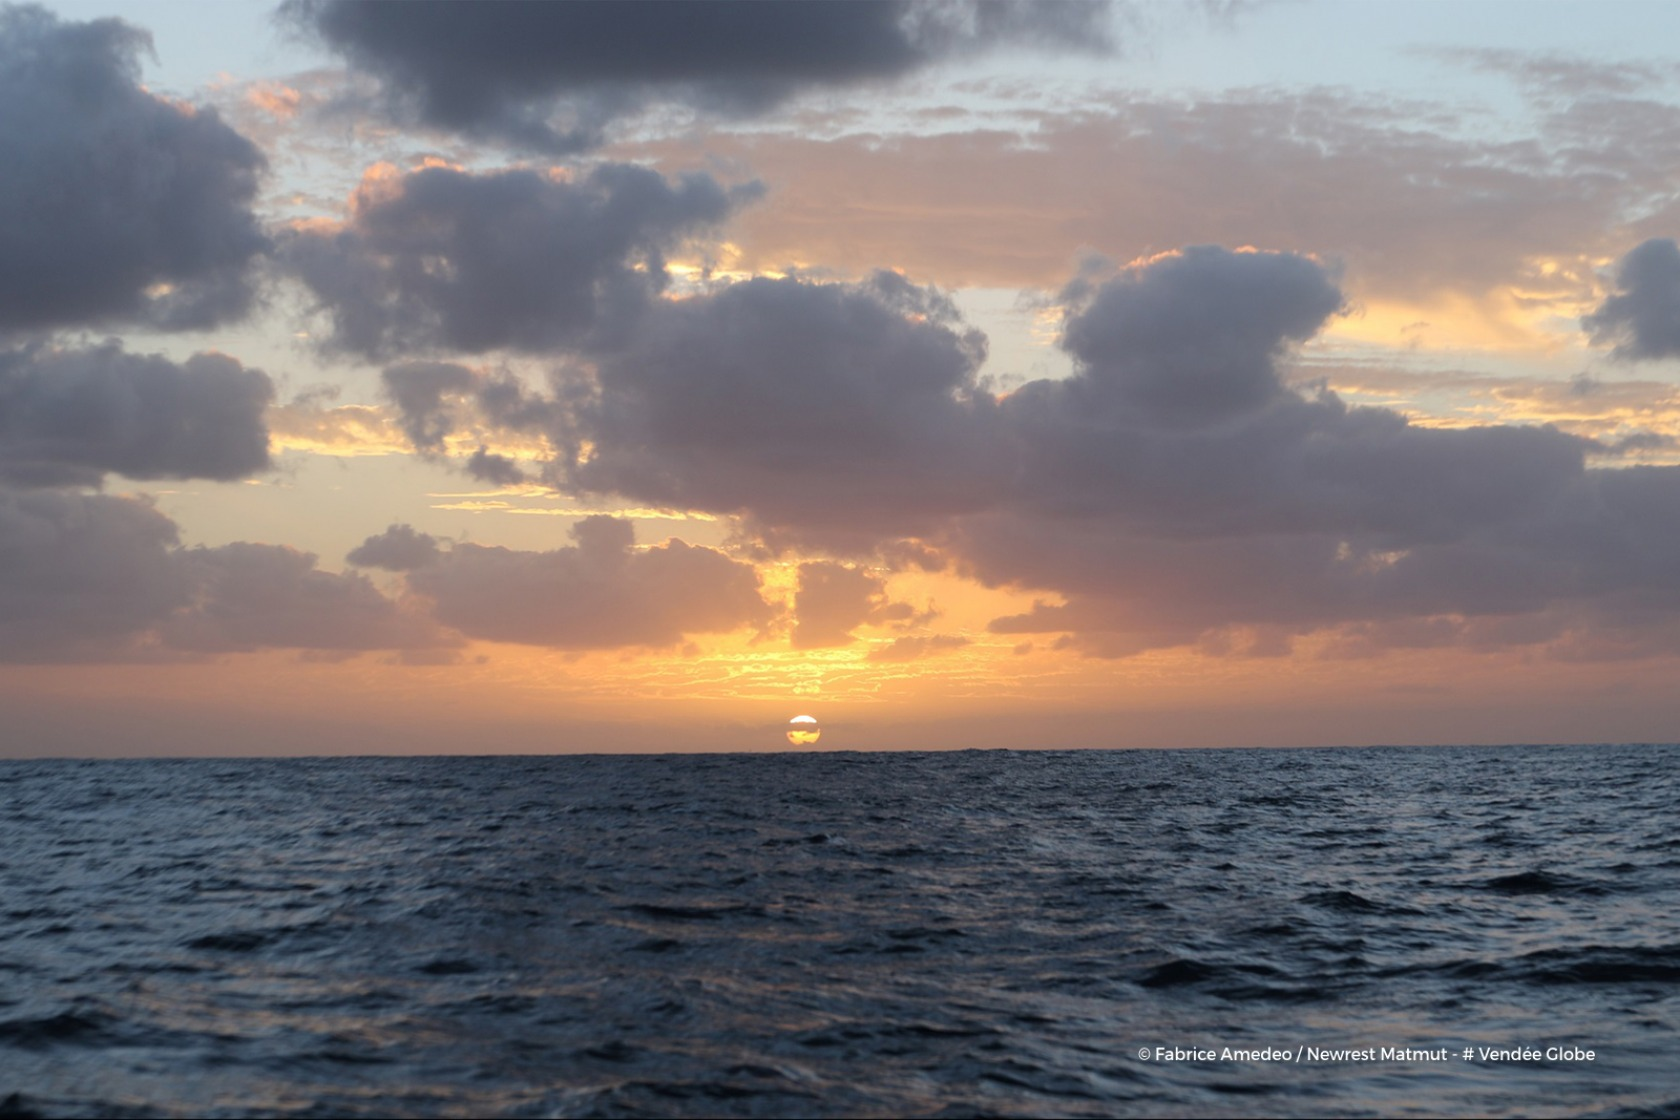 Photo sent from the boat Newrest - Matmut, on November 14th, 2016 - Photo Fabrice Amedeo